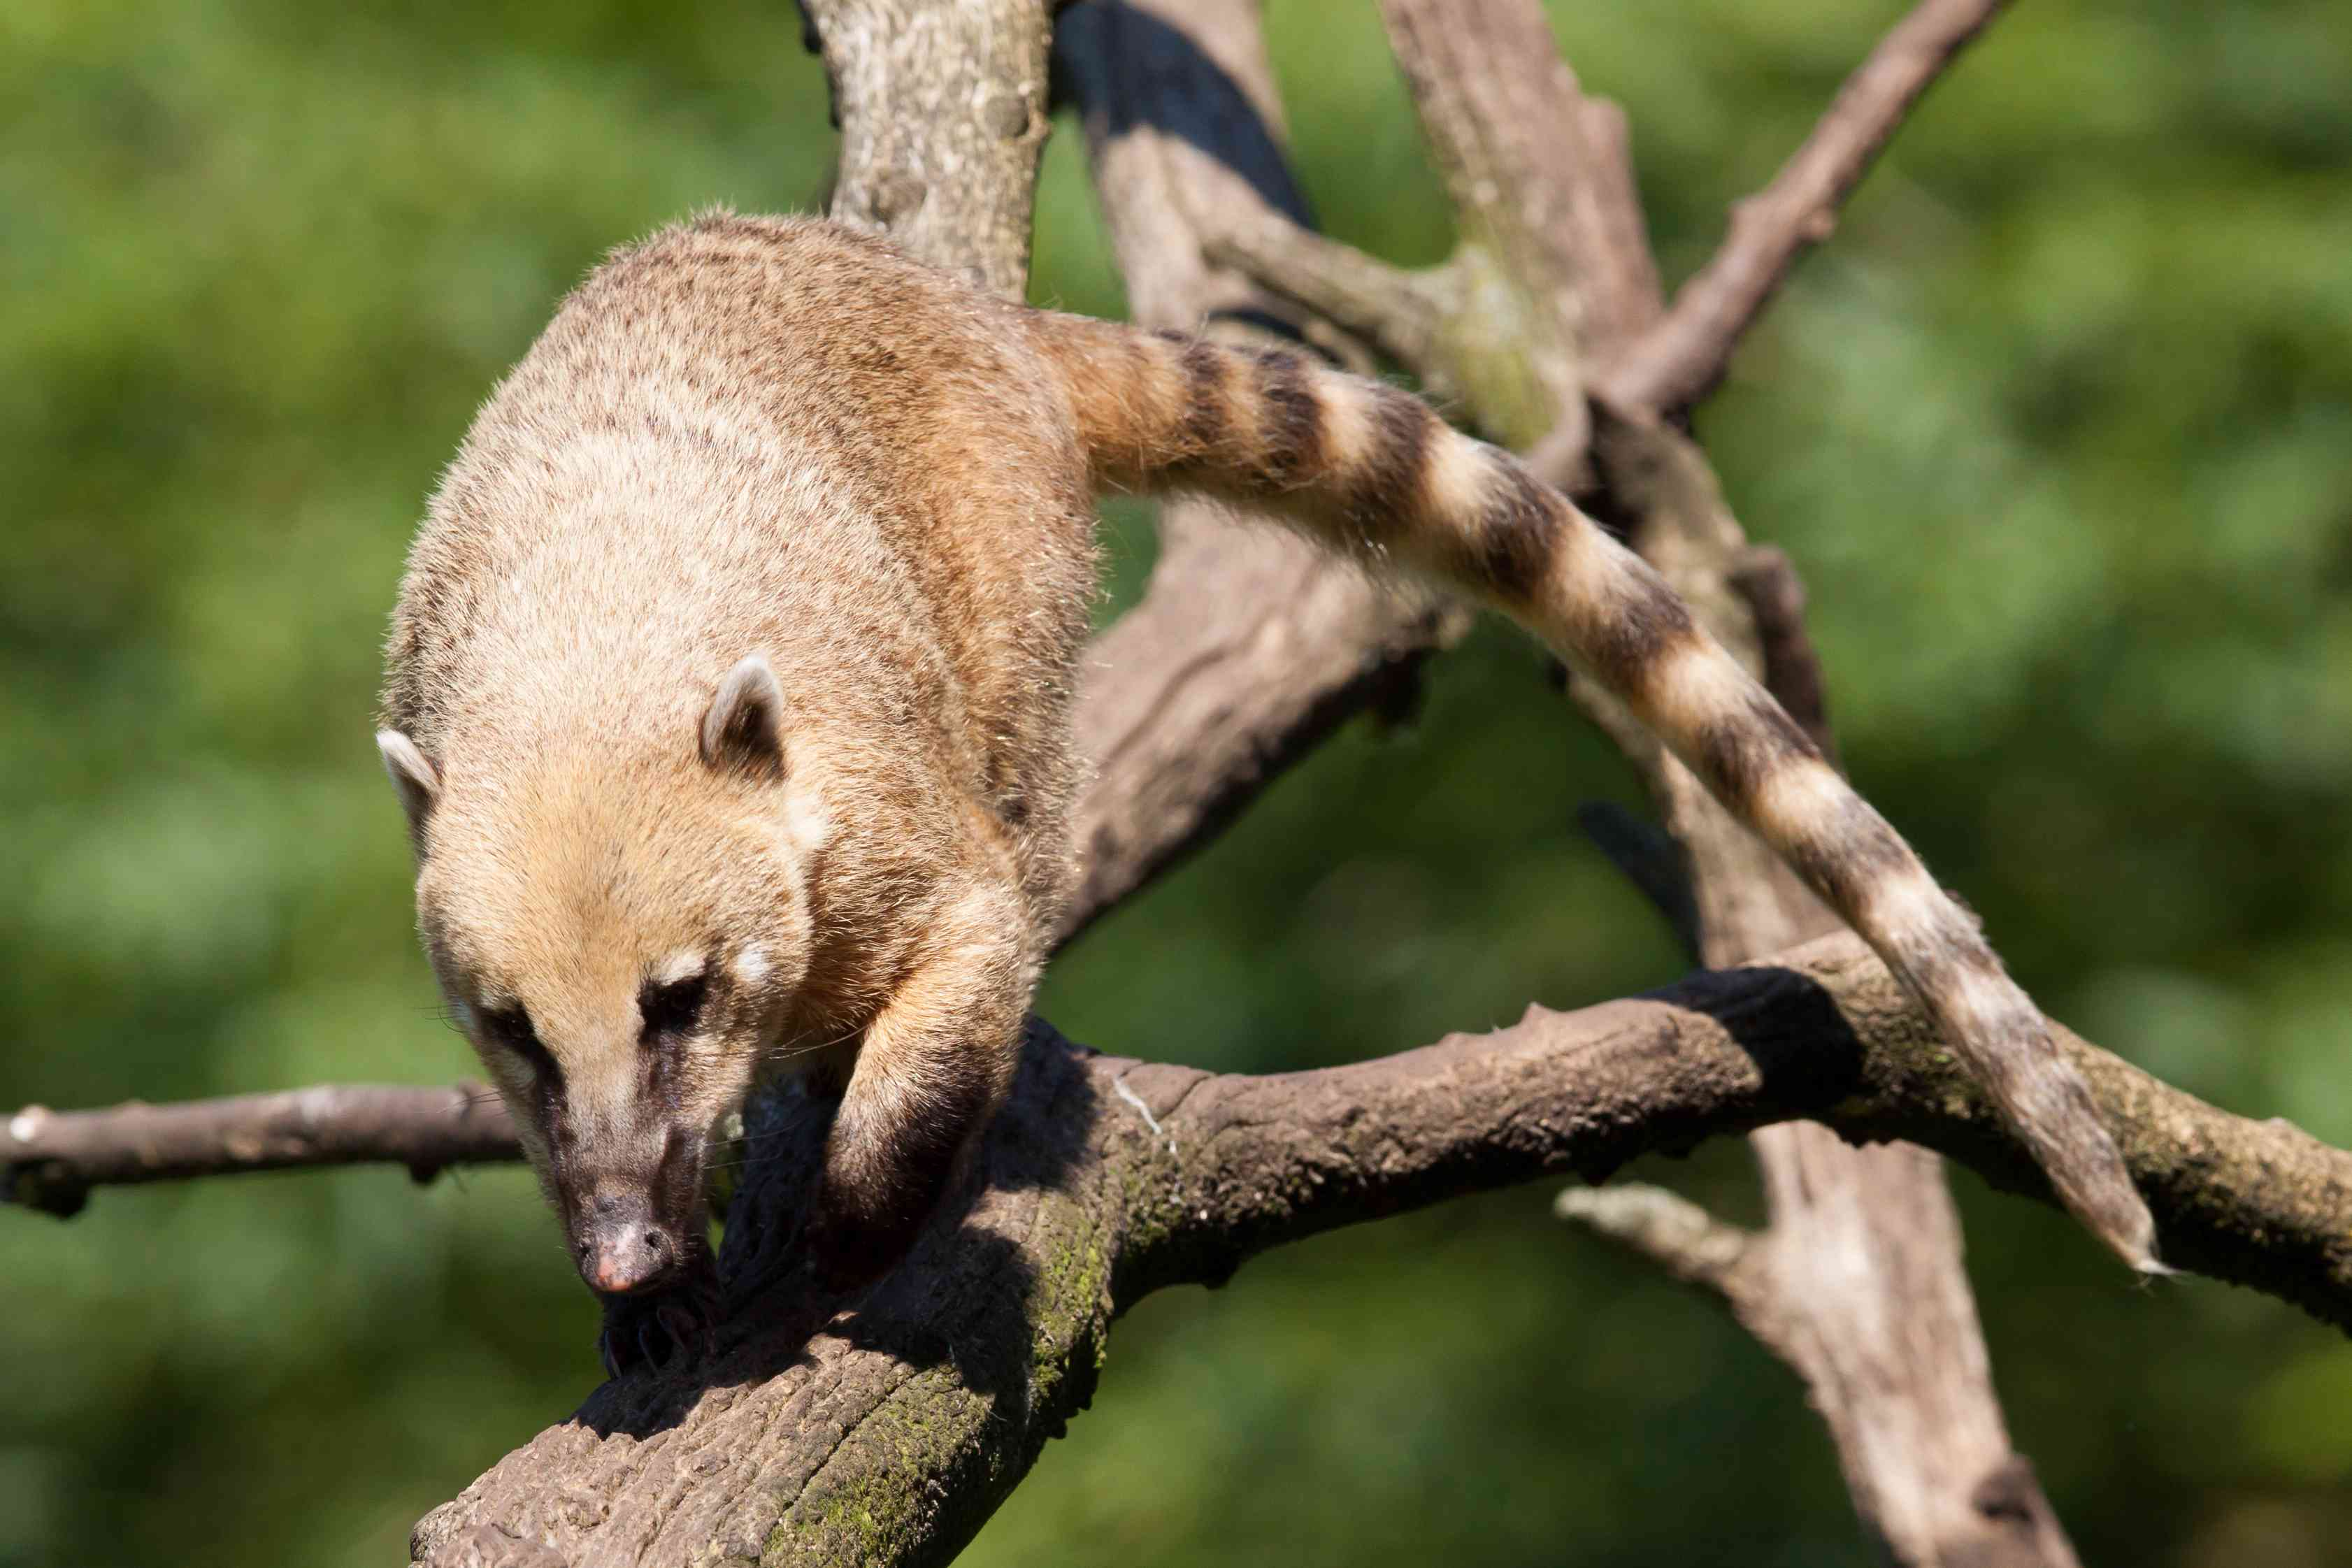 A ring tailed coati climbing down a tree